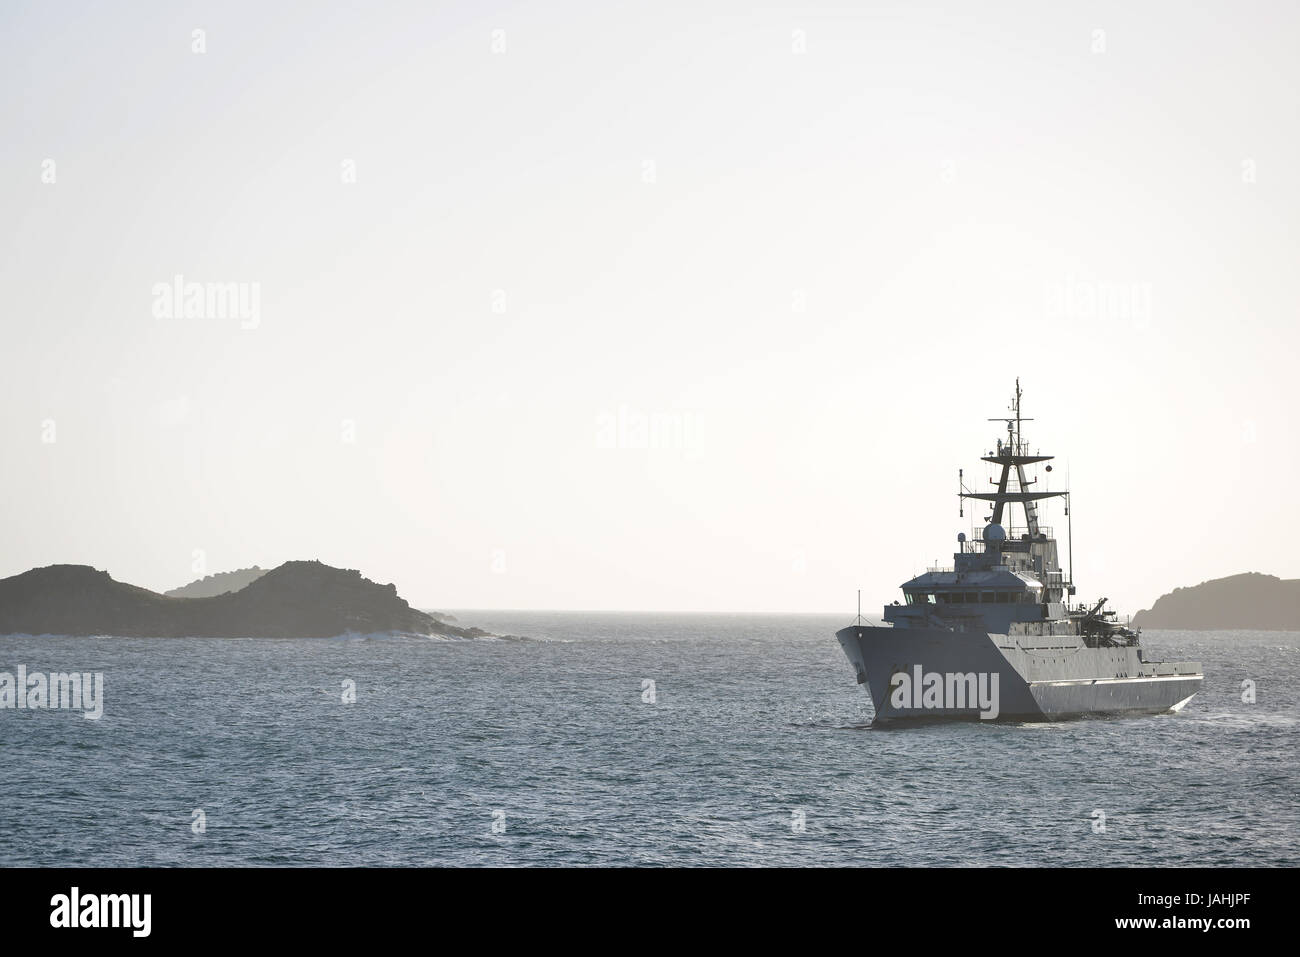 HMS Severn P282, British Royal Navy river class patrol vessel in the Scilly Isles. - Stock Image